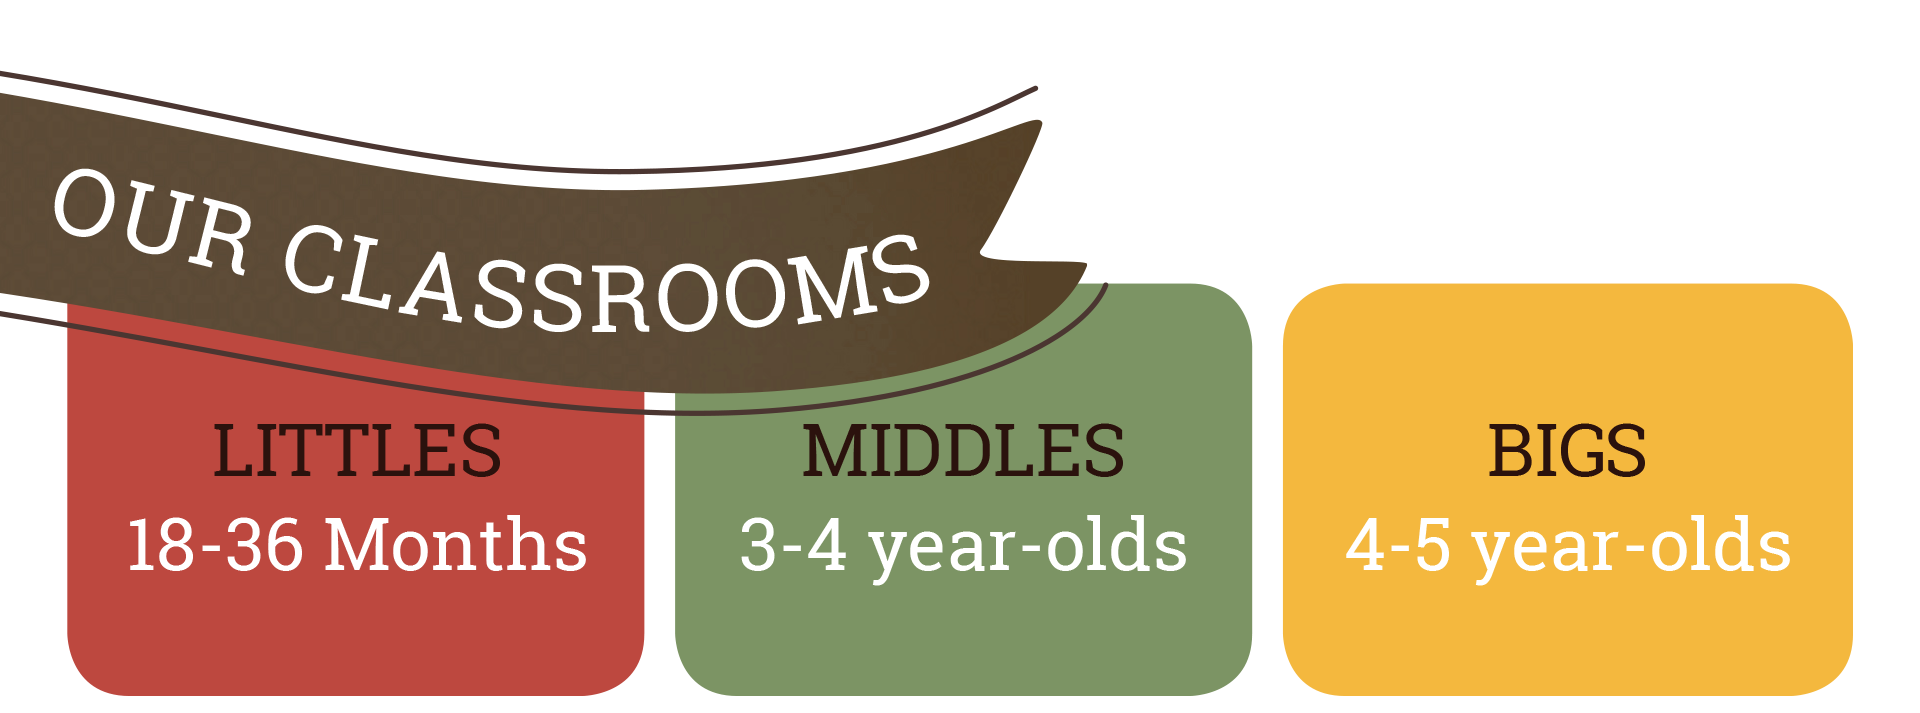 Classrooms: Littles 18-36 months; Middles 3-4 year-olds; Bigs 4-5 year-olds